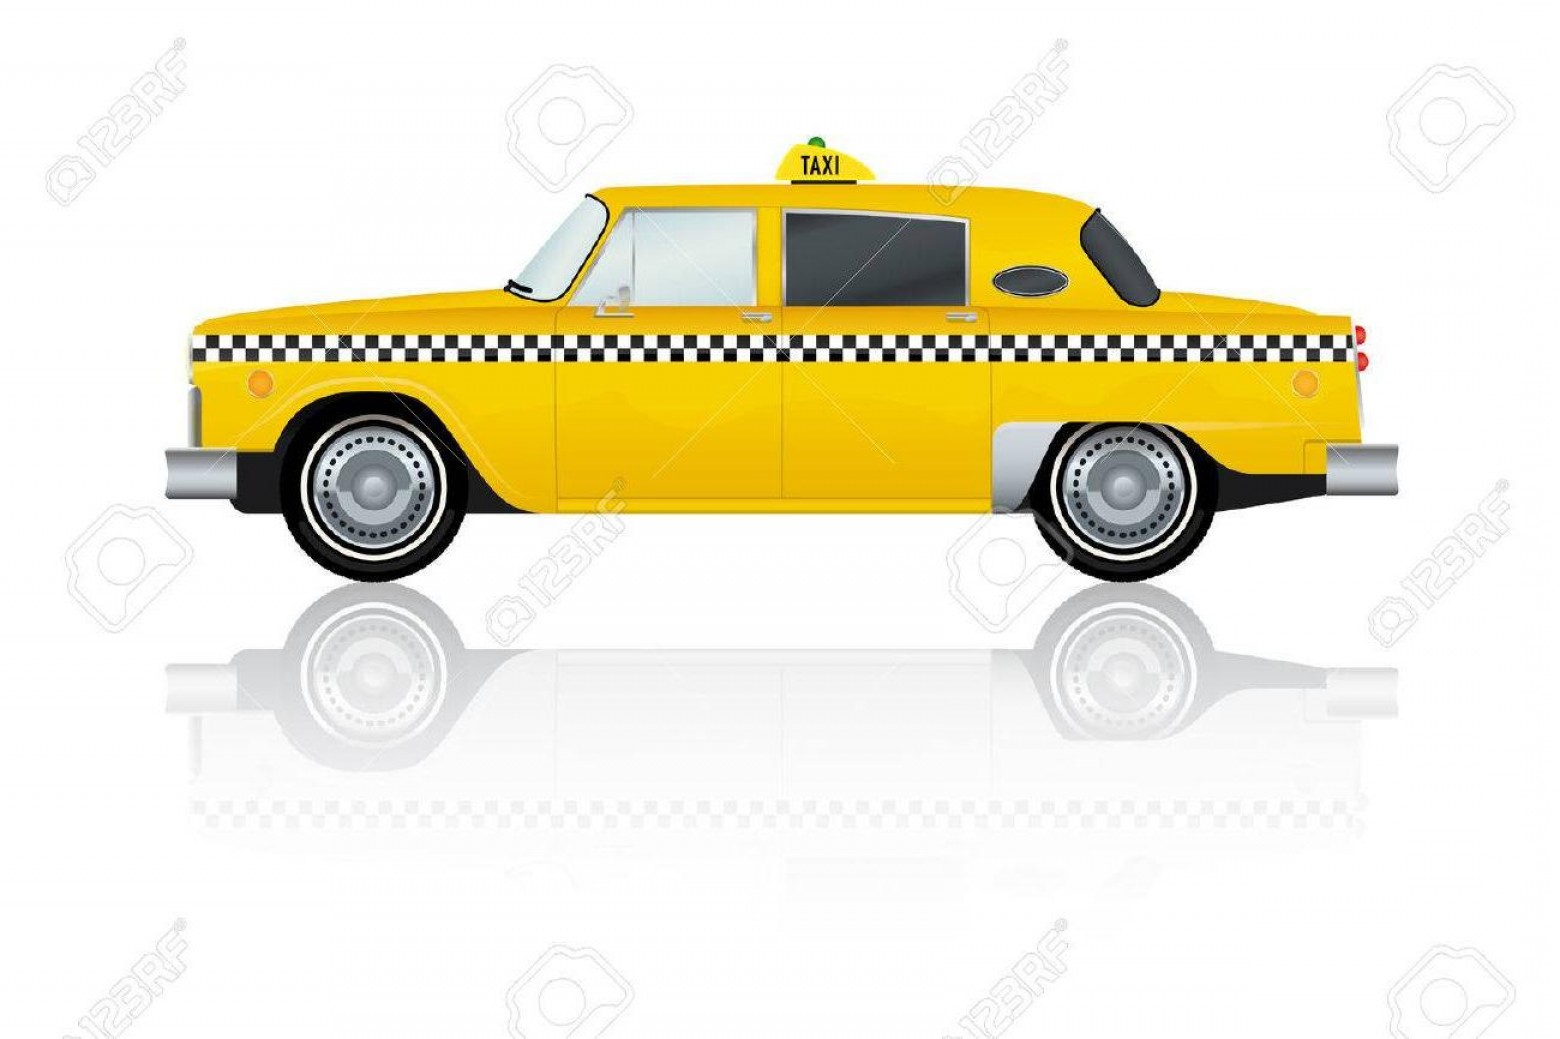 Taxi Checkers Vector: Top Vector Illustration Of Vintage Yellow New York Taxi Cab Design